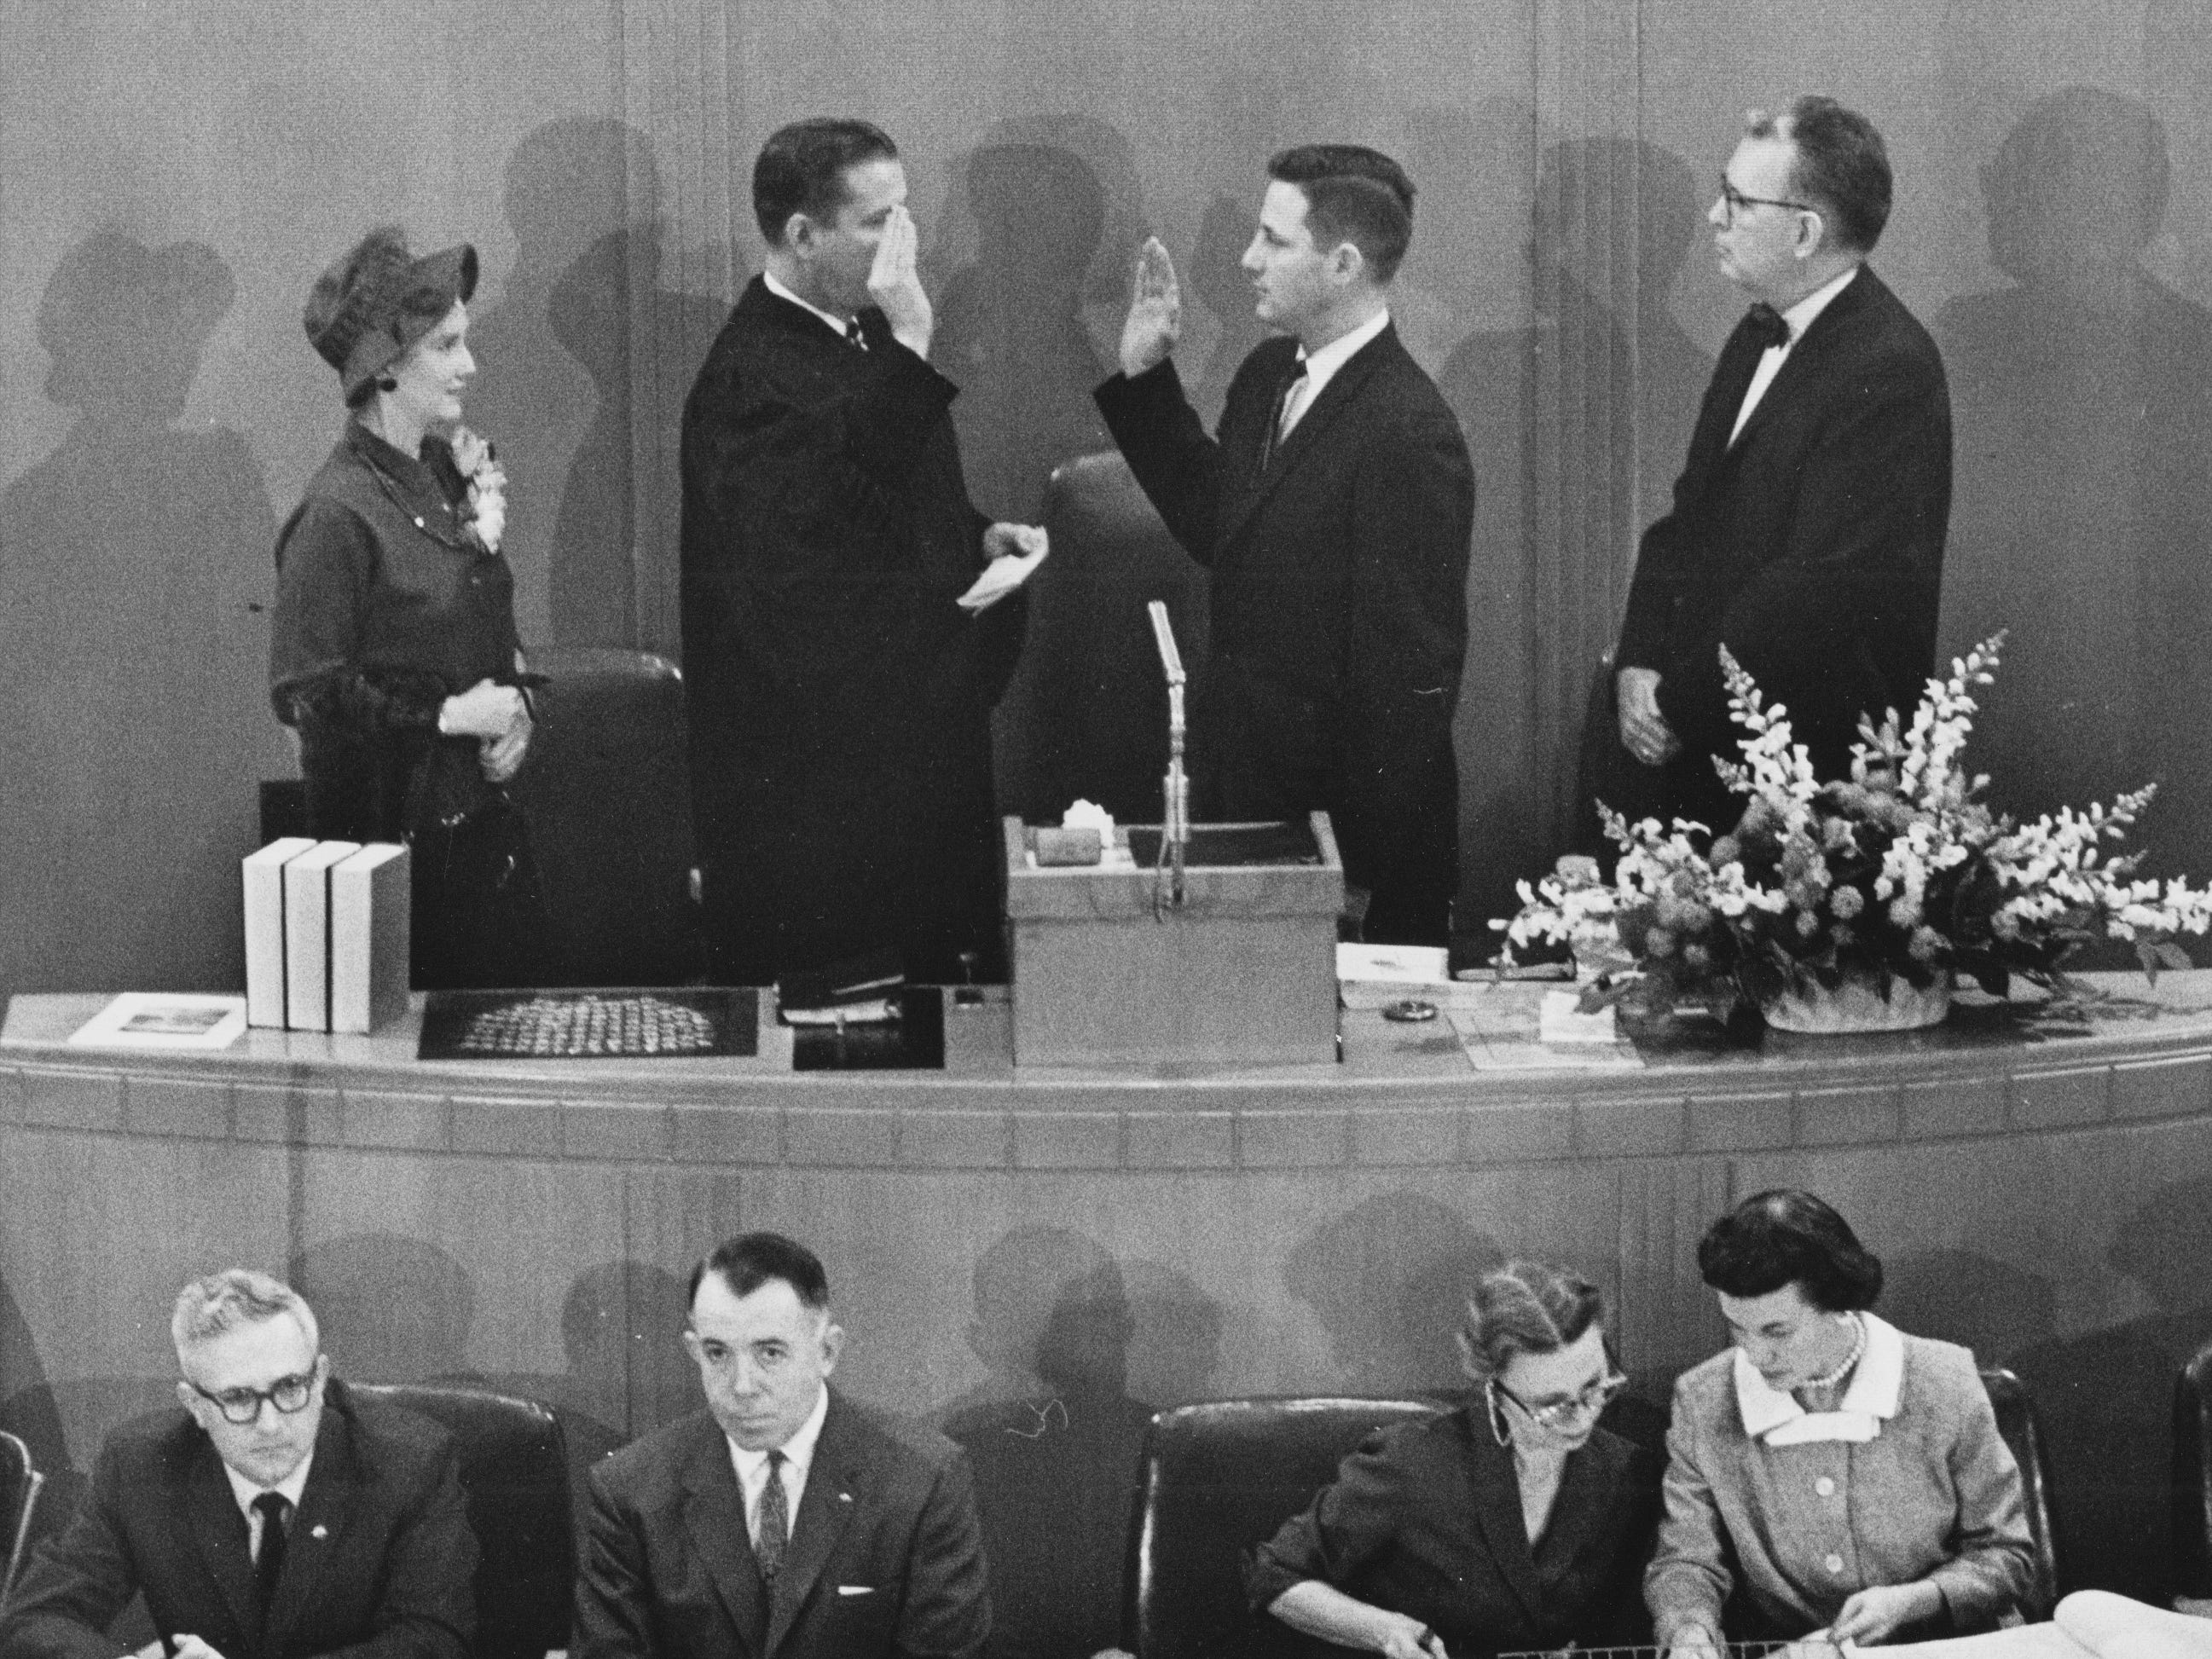 Birch Bayh is sworn in as Speaker of the Indiana House of Representatives on Jan. 8, 1959 as wife Marvella looks on.